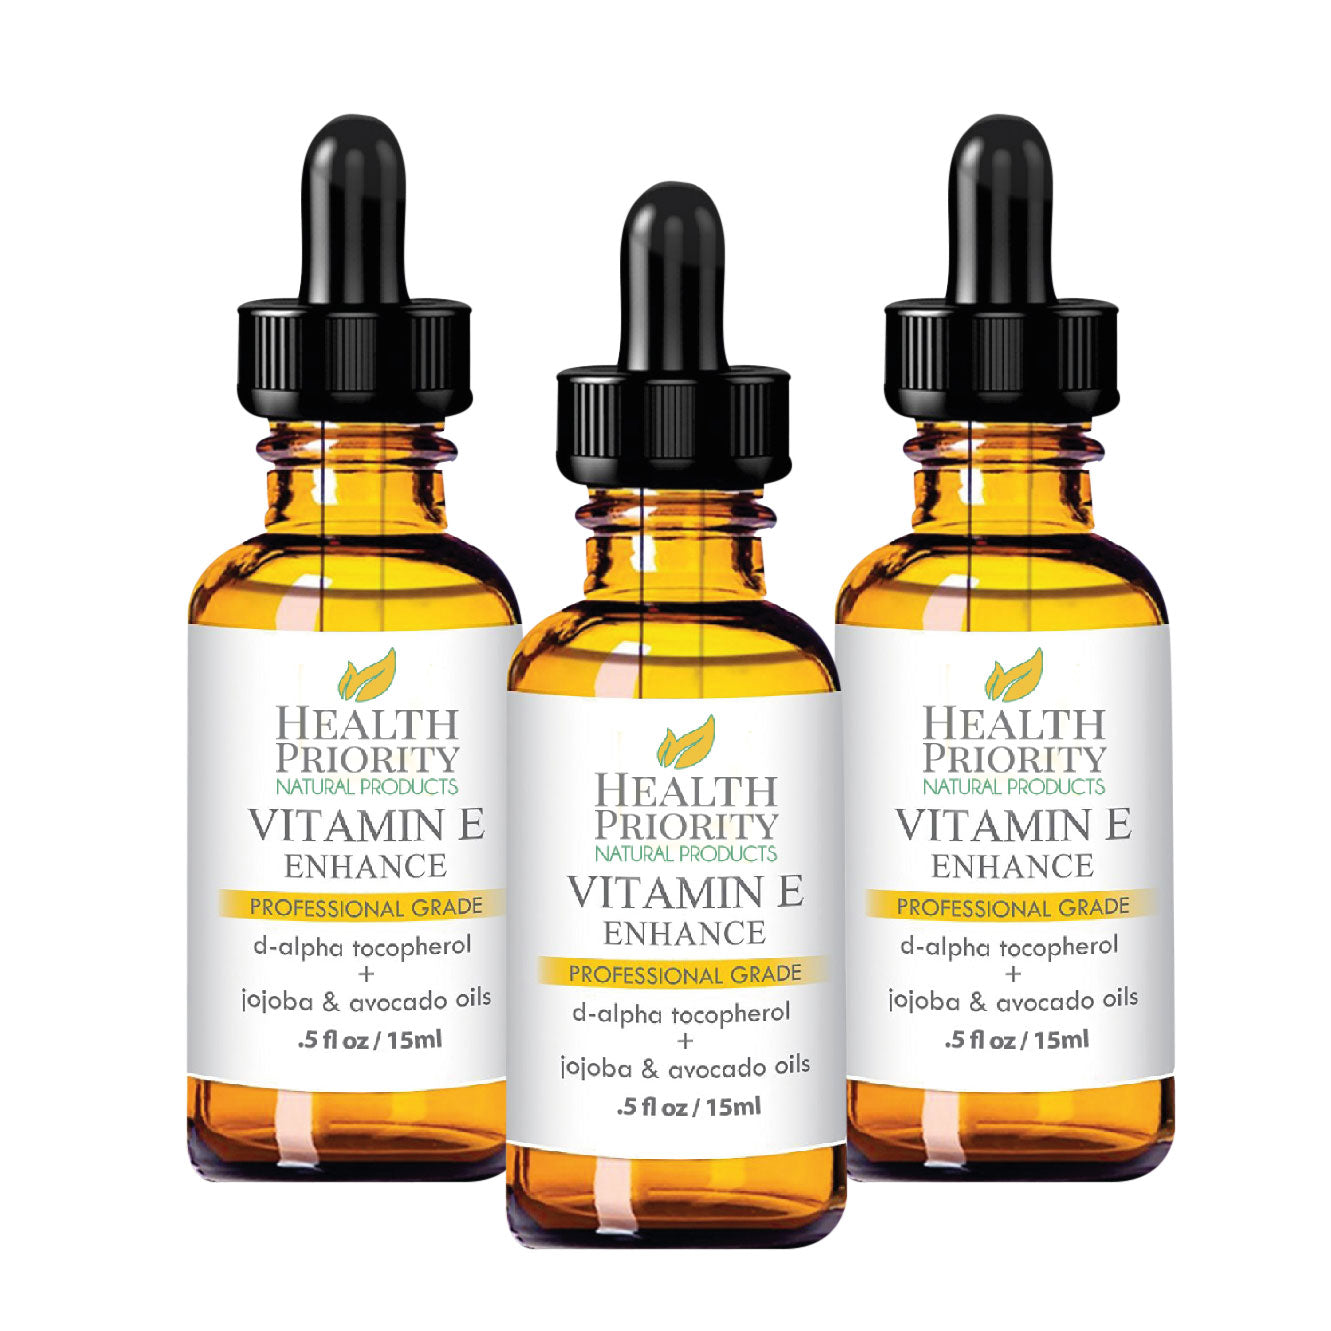 100% Natural & Organic Vitamin E Oil